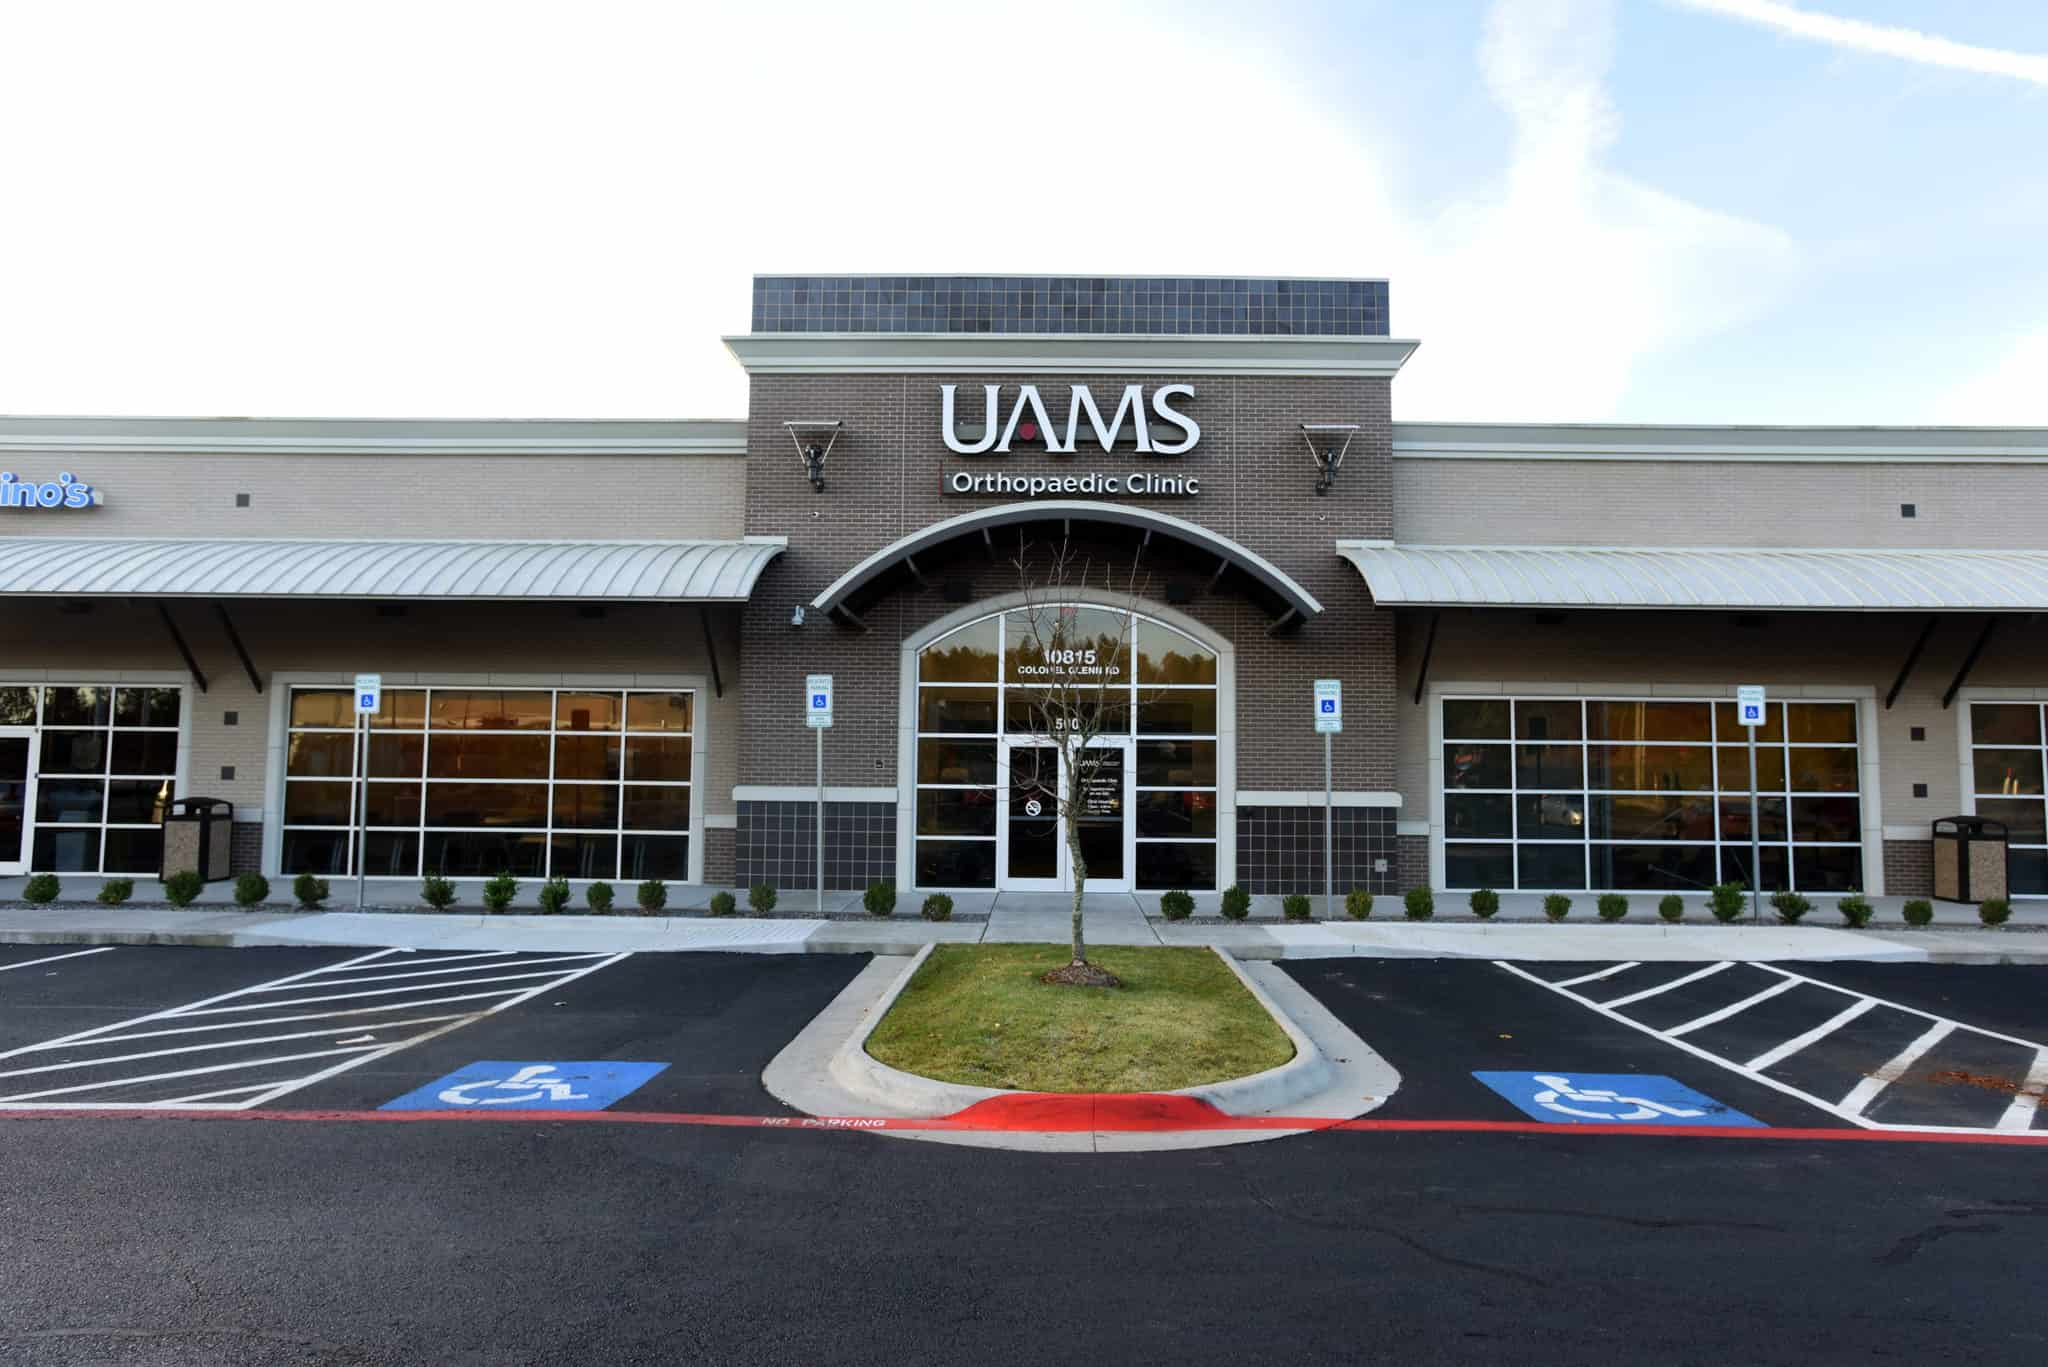 At the UAMS Health Back and Neck Clinic, patients receive team-based care from both a physical therapist and a doctor who specialize in spine and sports injuries. The clinic is located at 10815 Colonel Glenn Road in Little Rock.